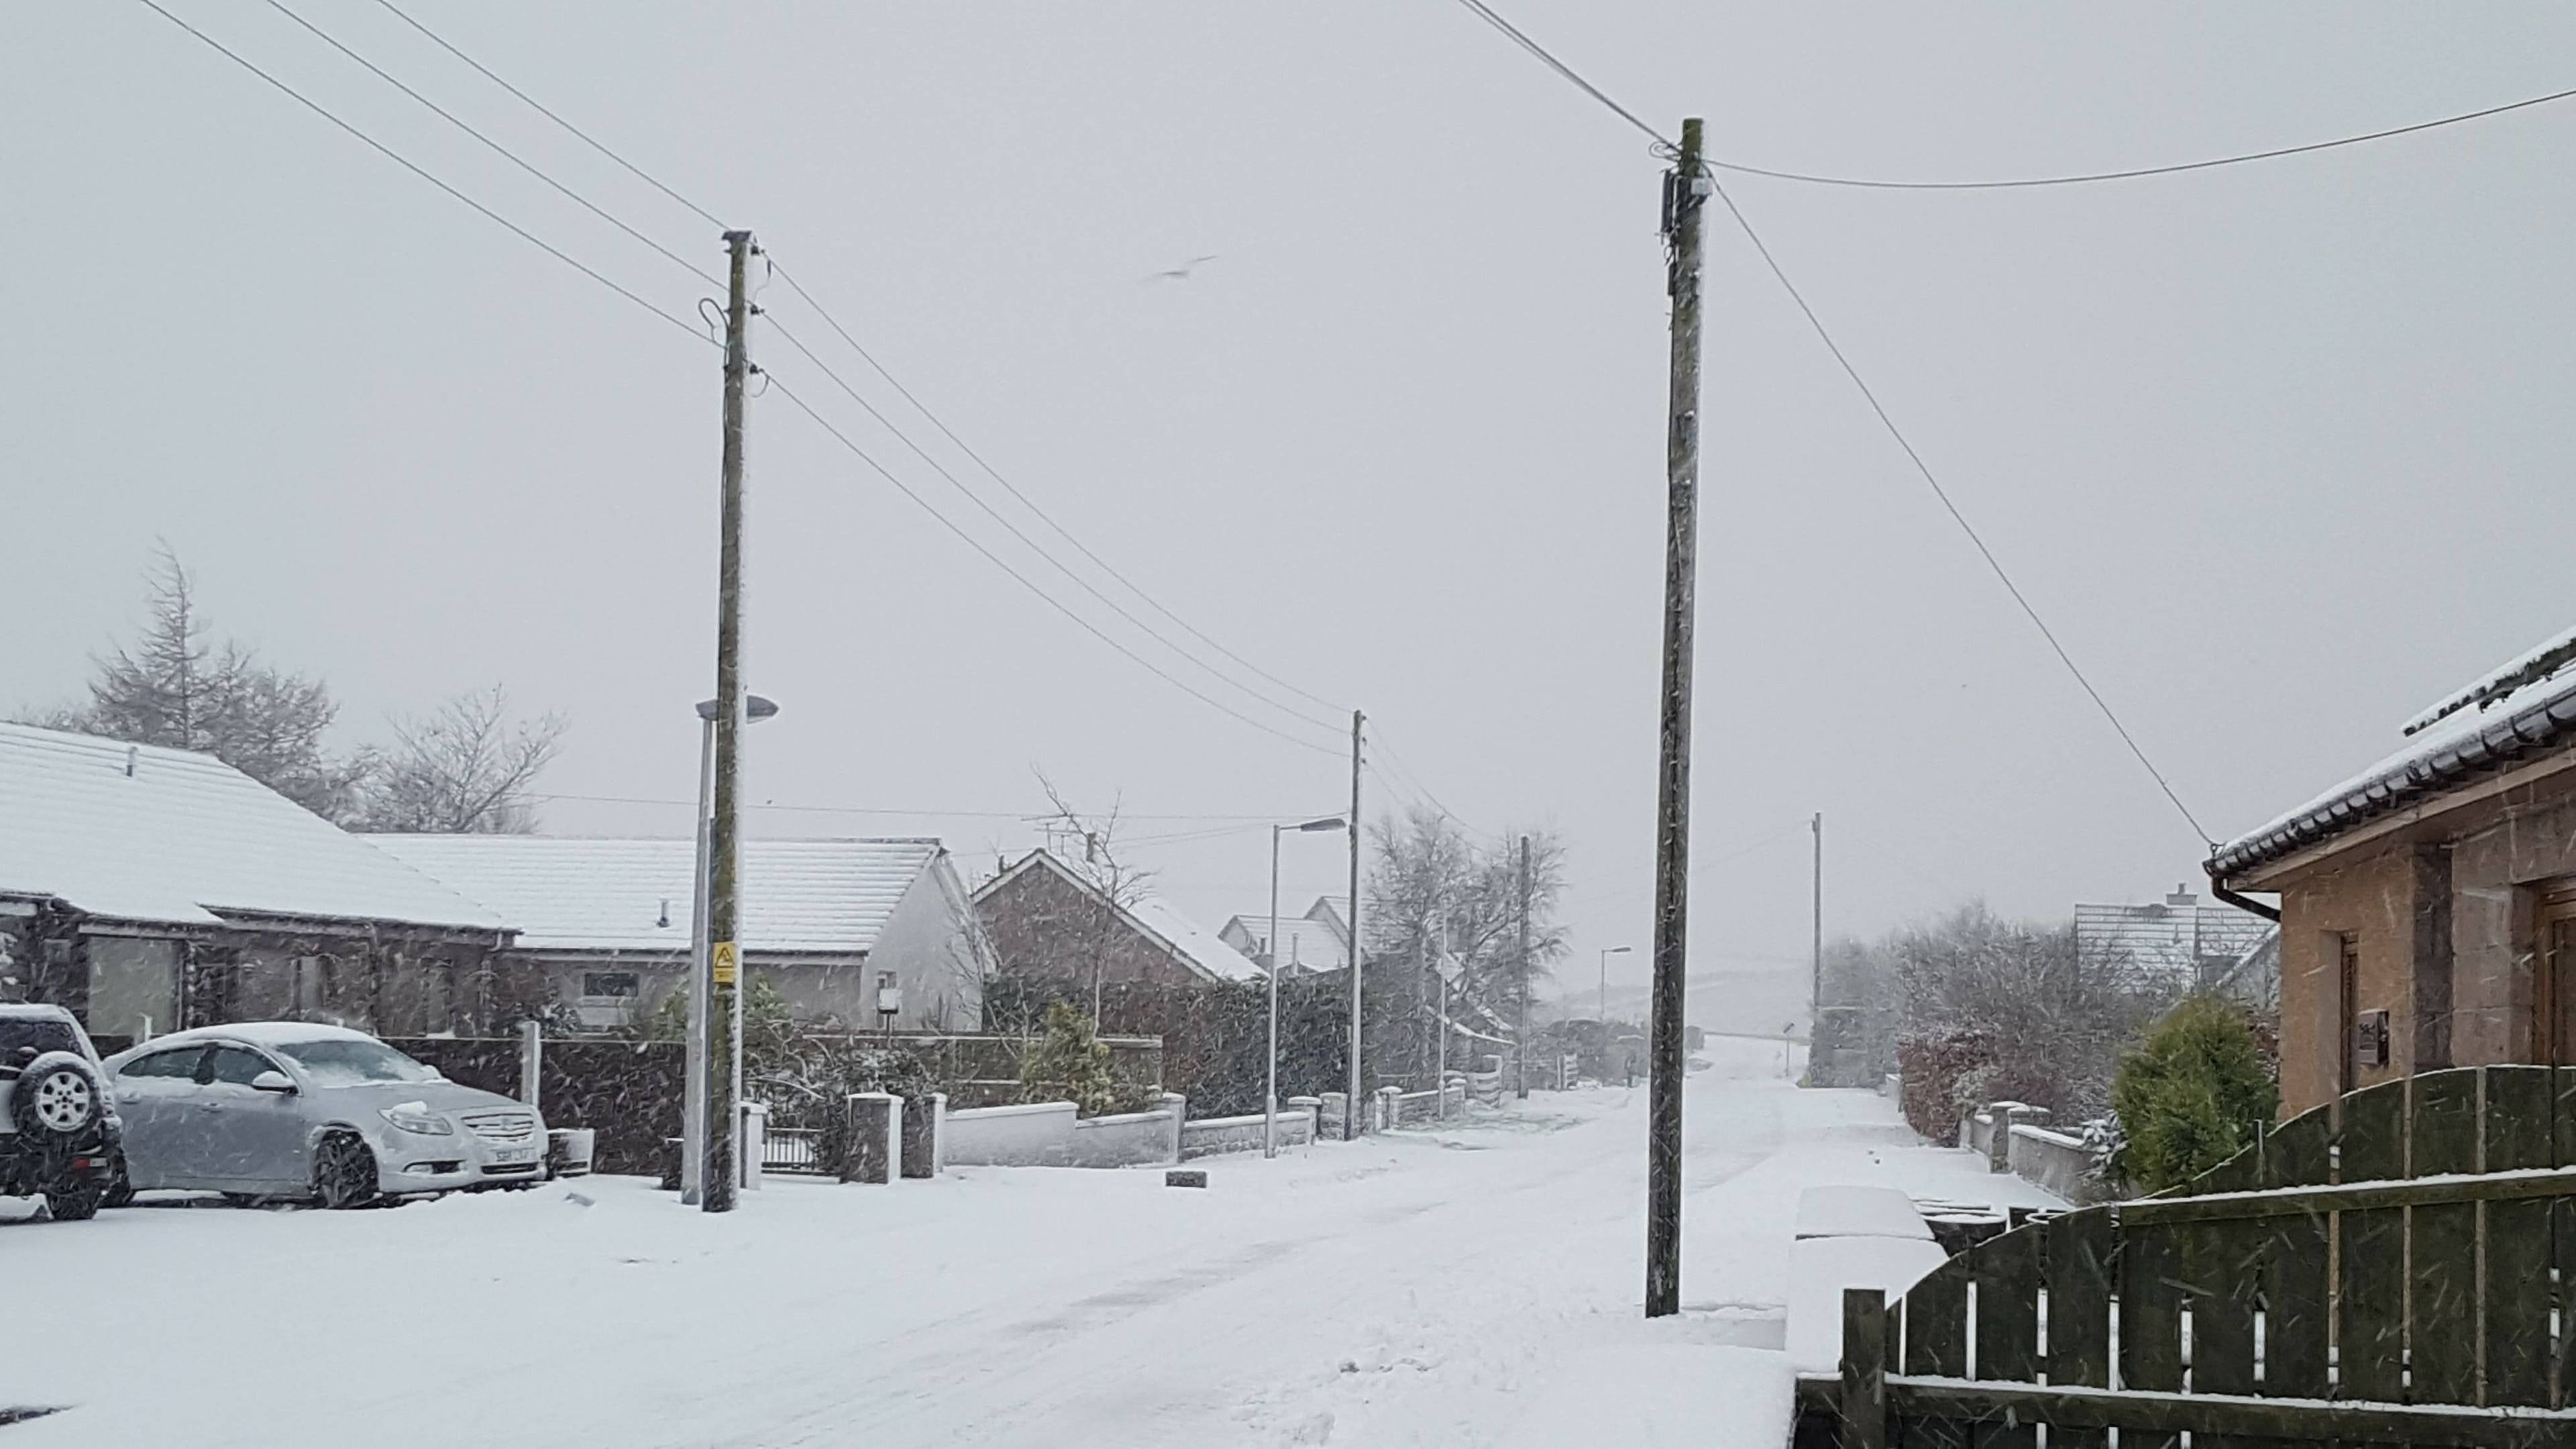 Snowy conditions in St Katherines, near Oldmeldrum